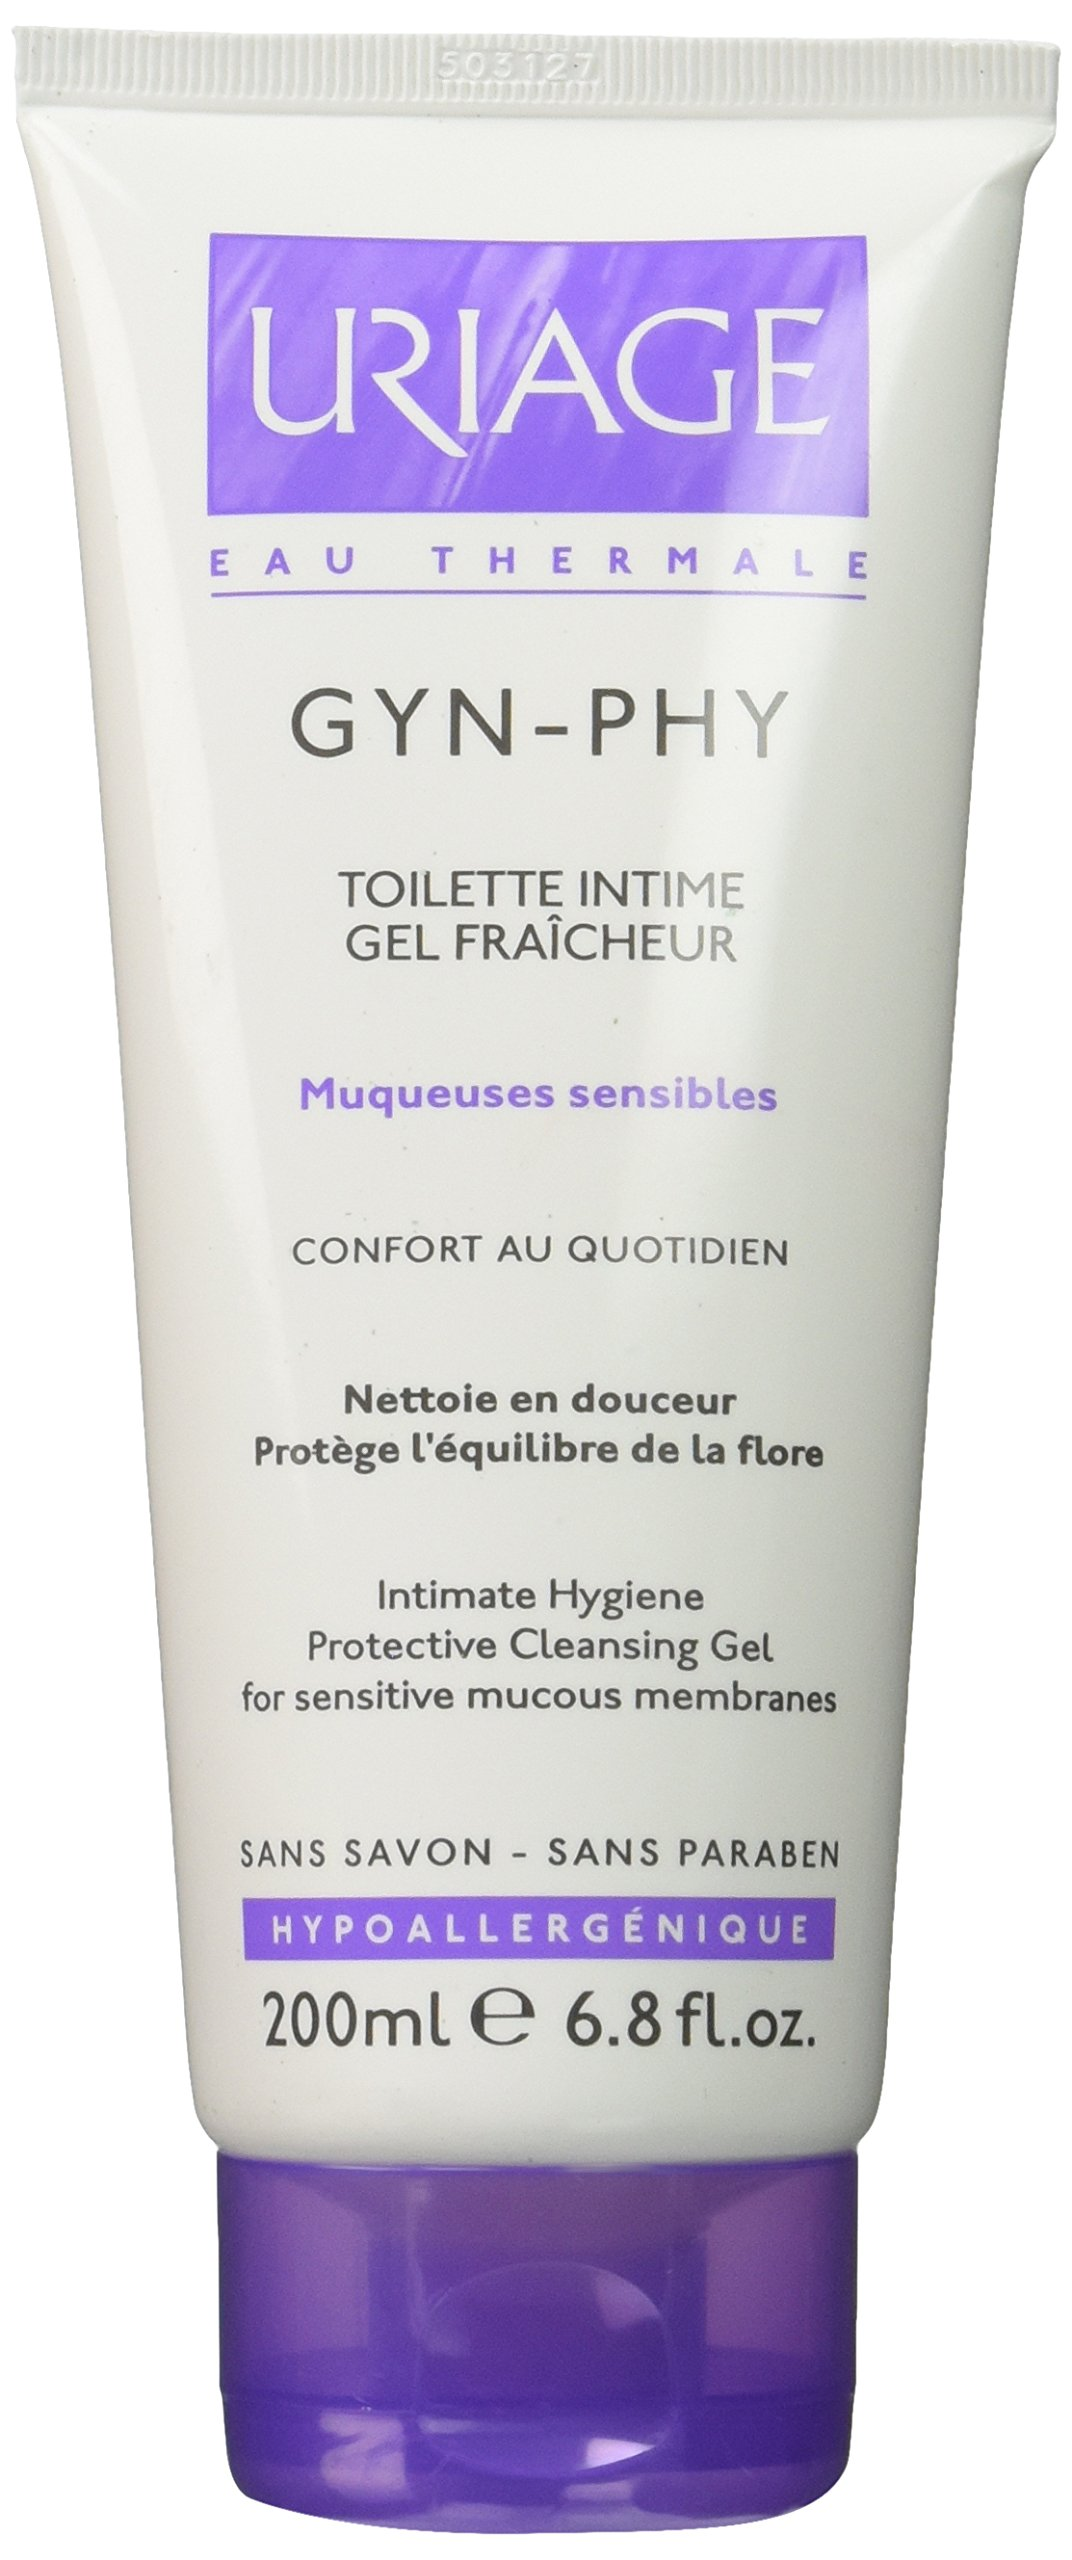 Uriage Gyn-phy Intimate Hygiene Protective Cleansing Gel for Sensitive Mucous Membranes 200 Ml